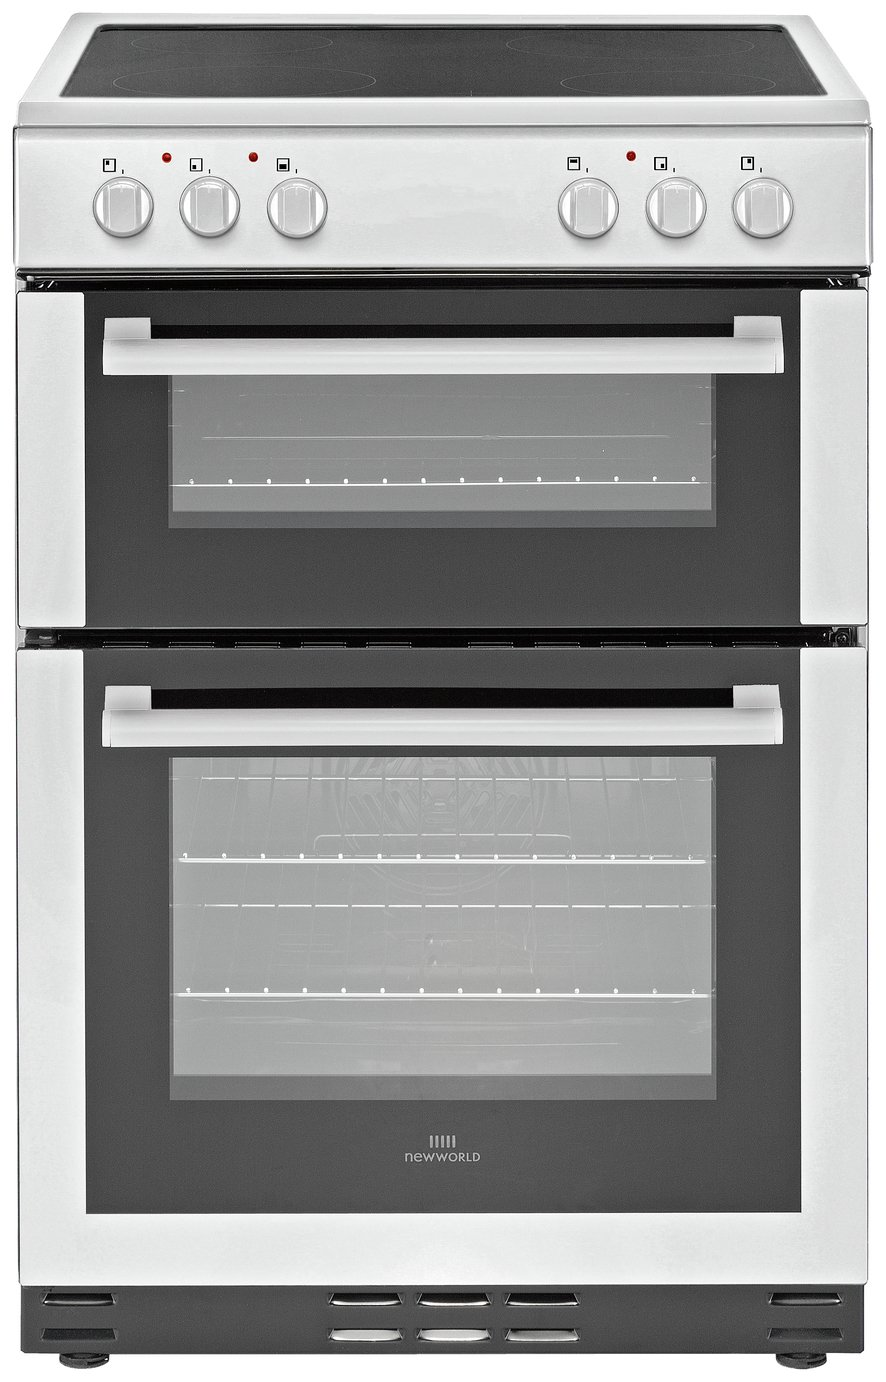 New World 60EDOC 60cm Double Oven Electric Cooker - White Best Price, Cheapest Prices